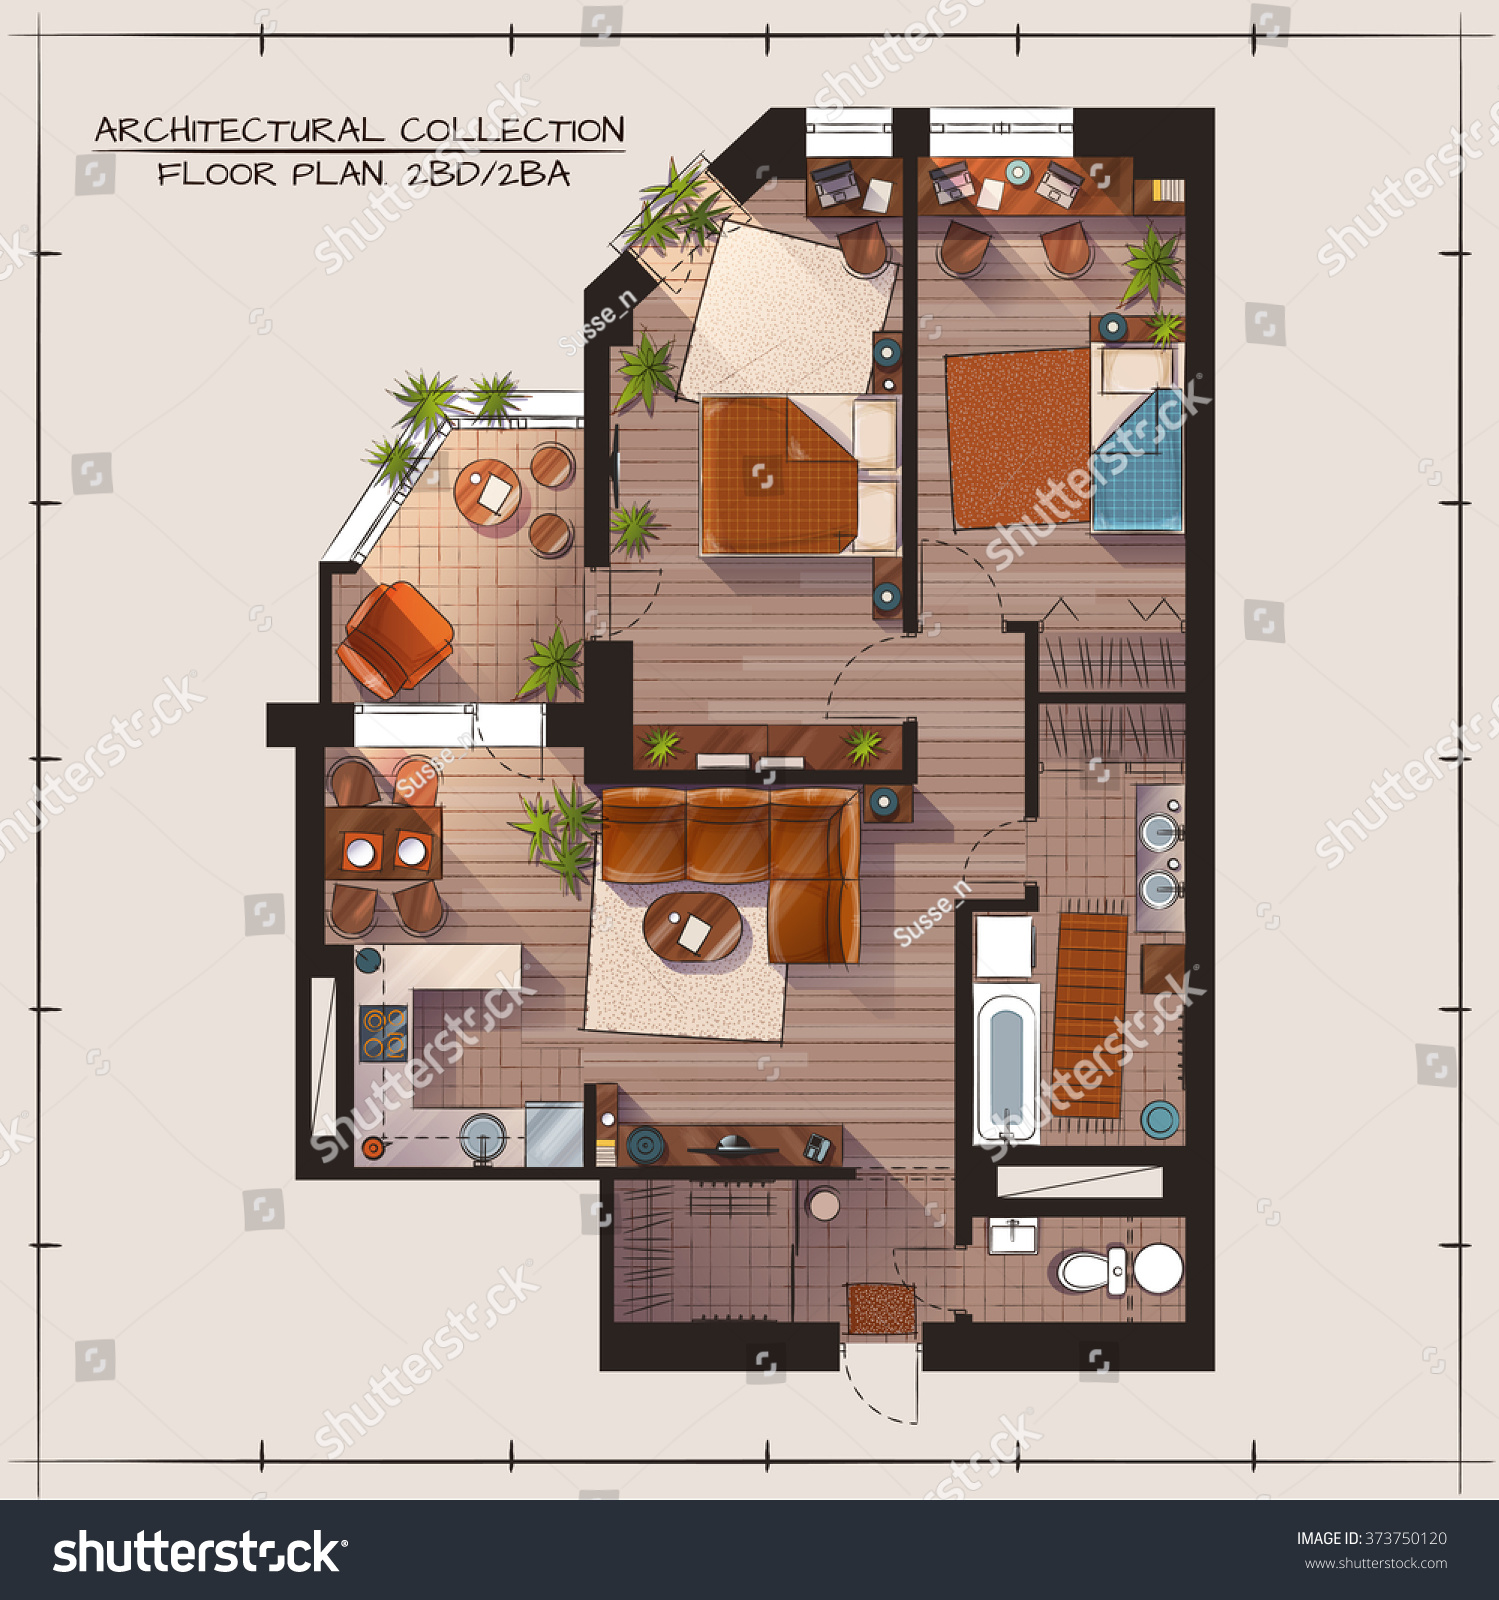 Architectural Color Floor Plan Bedrooms Apartment Stock Vector ...